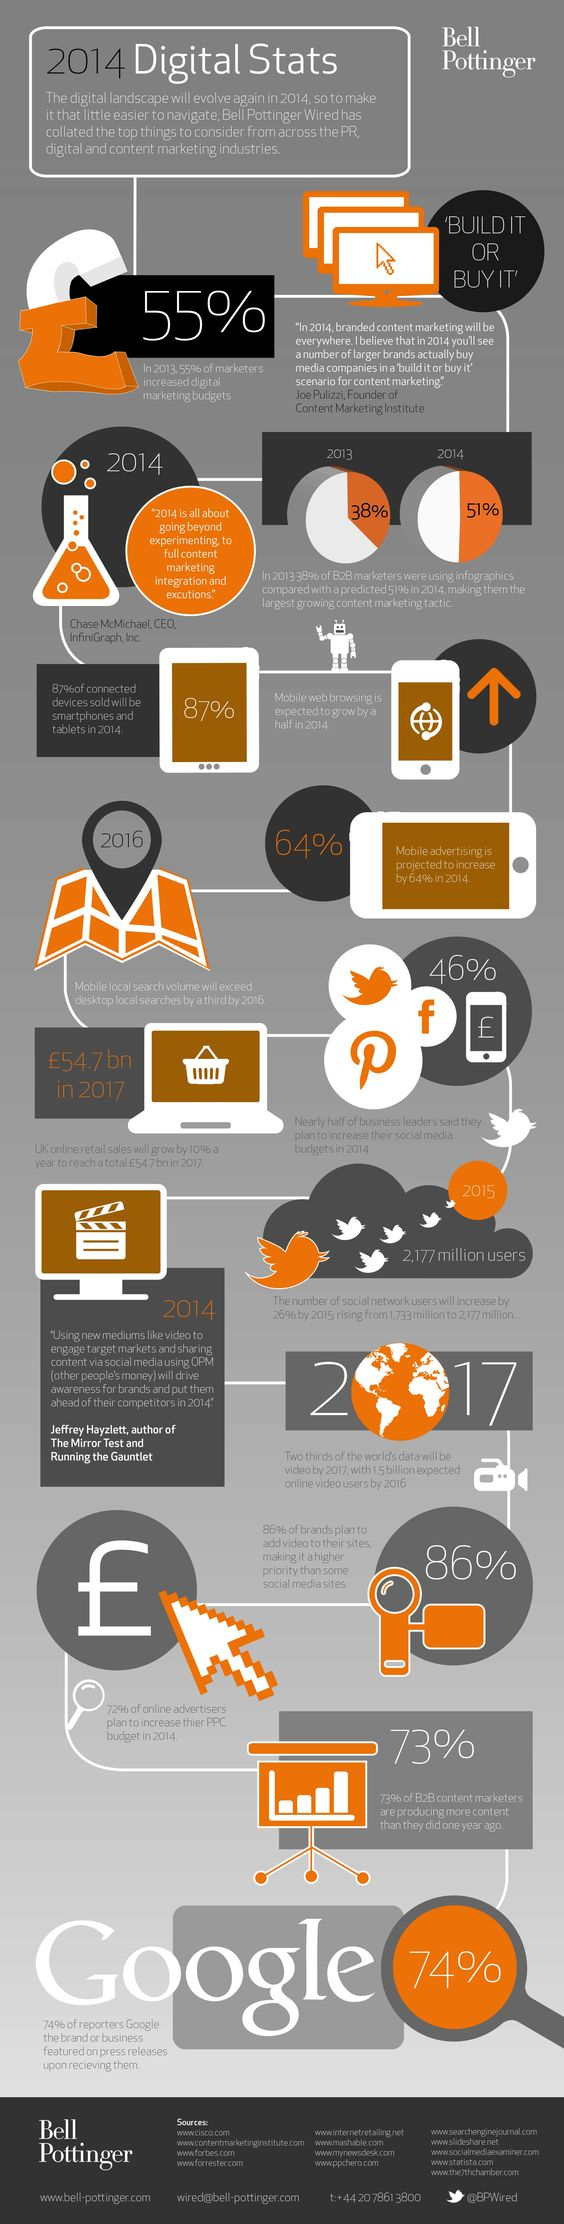 The year ahead in #digital - #infographic